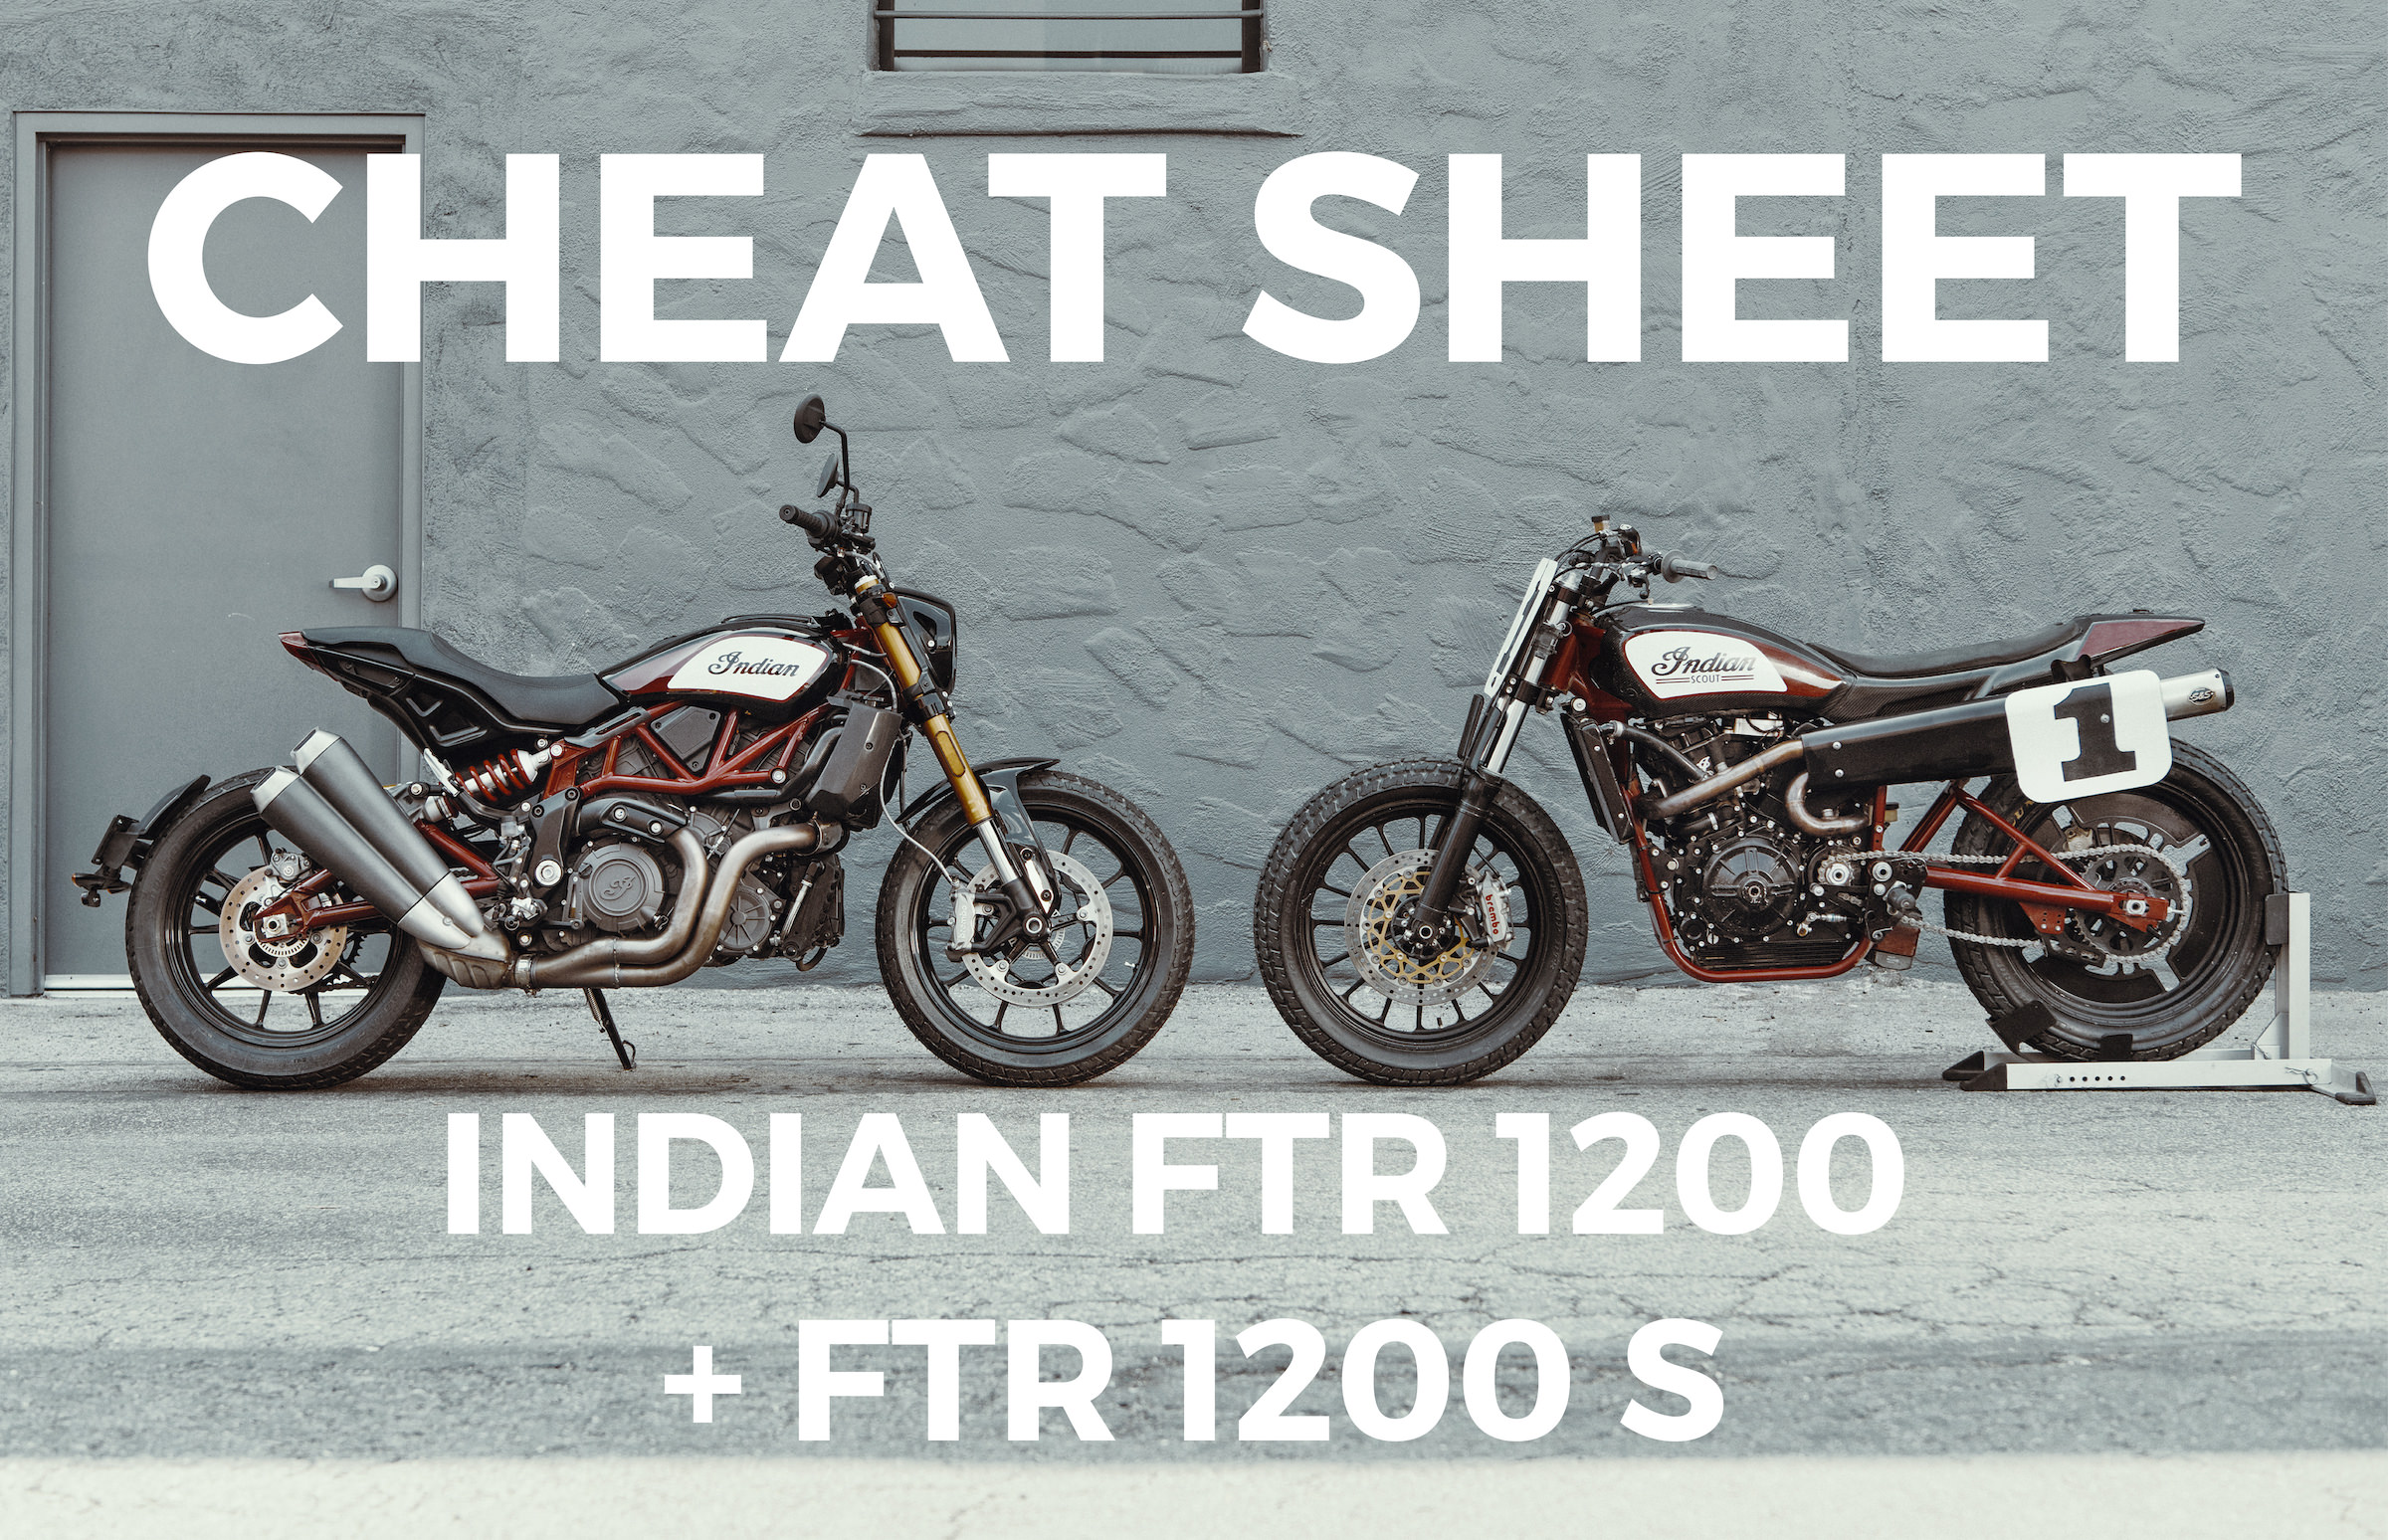 Indian FTR 1200 S Motorcycle